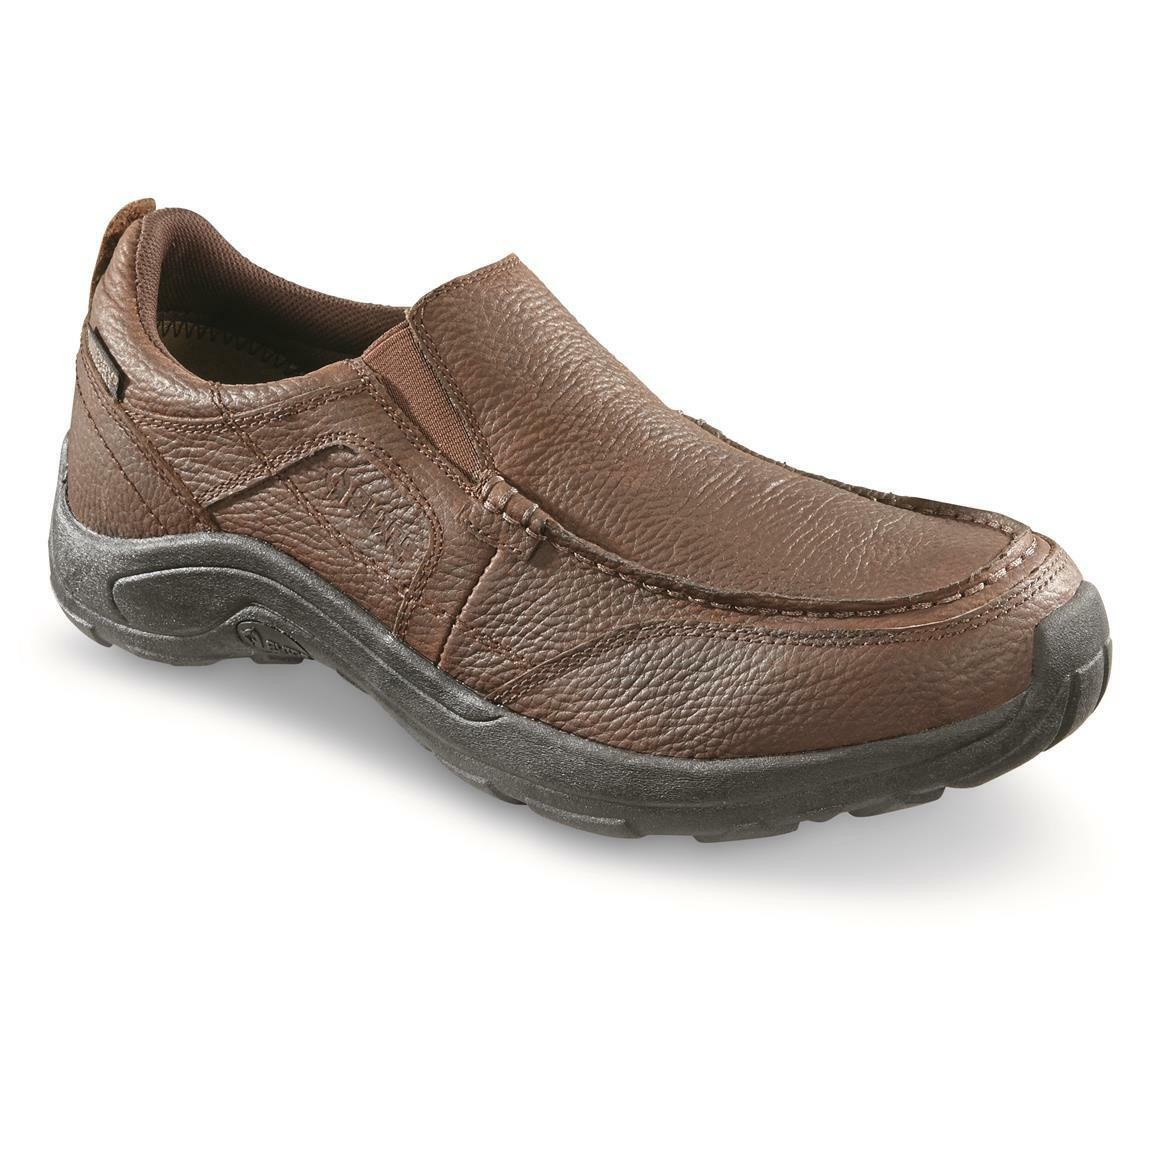 eaf767a91657b GUIDE GEAR Men s Premium Waterproof Slip On Shoes Canyon Canyon Canyon  Brown Size 12D dcdd31